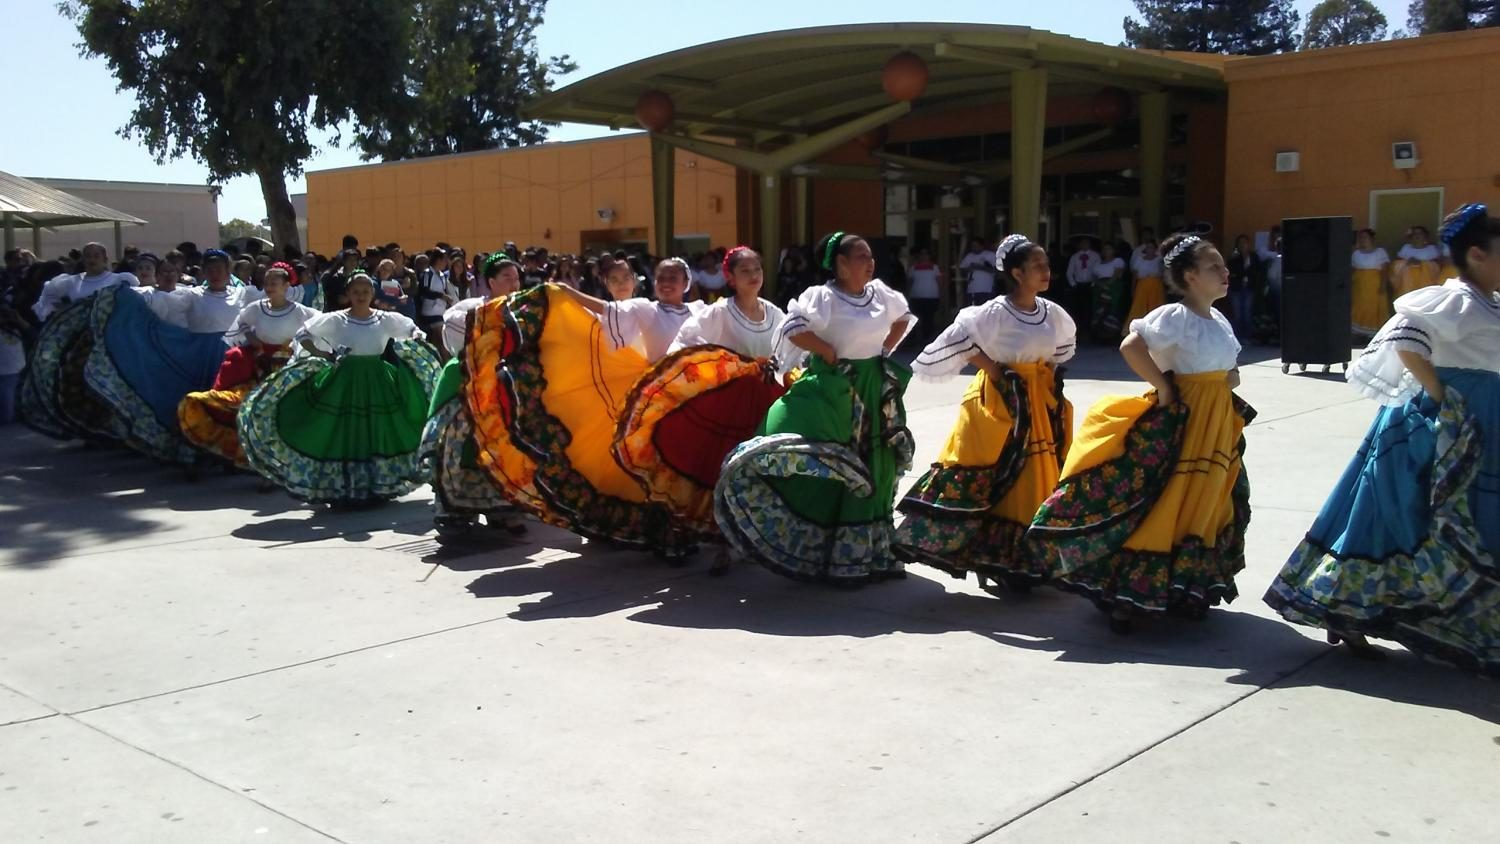 At lunch in the quad on September 15, 2017 Lincoln's folklorico group performed. (Isabelle Santiago / Lincoln Lion Tales)